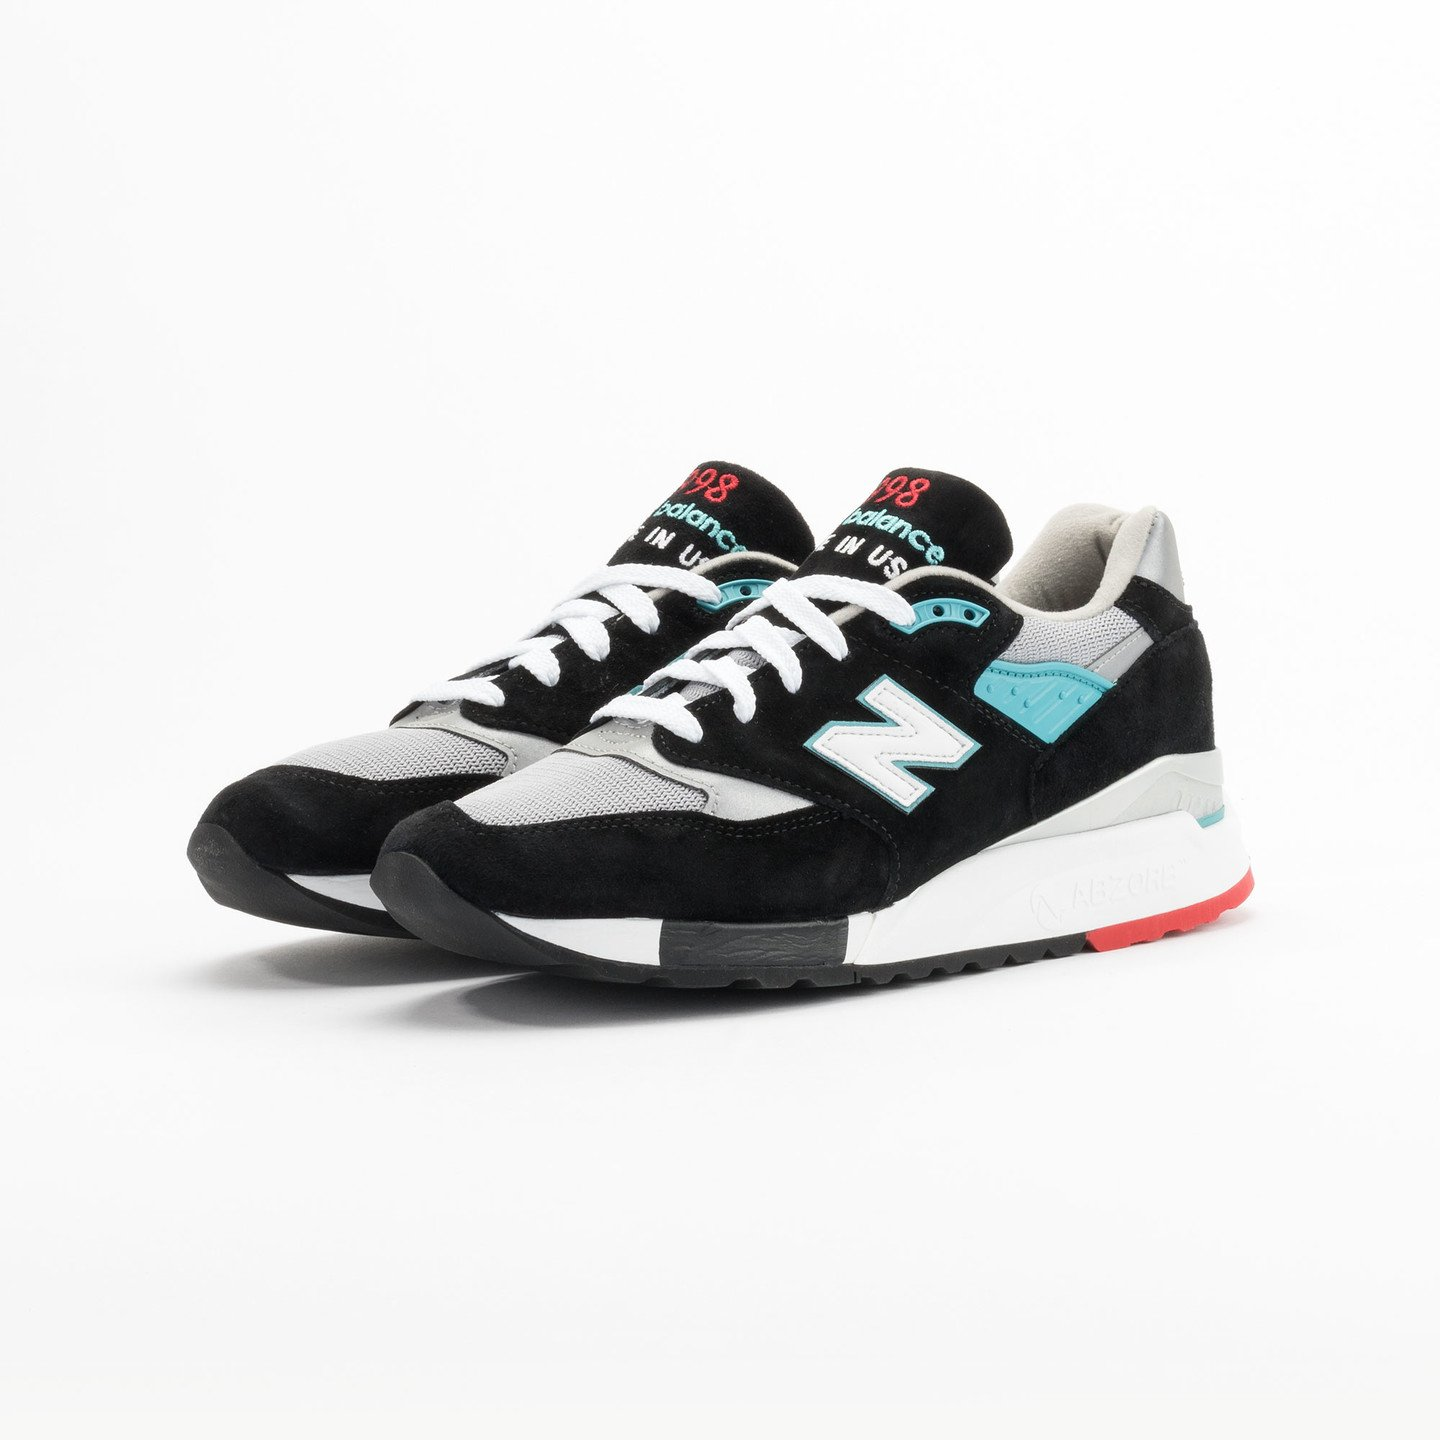 New Balance M998 CBB - Made in USA Black / Grey / Turquoise M998CBB-43